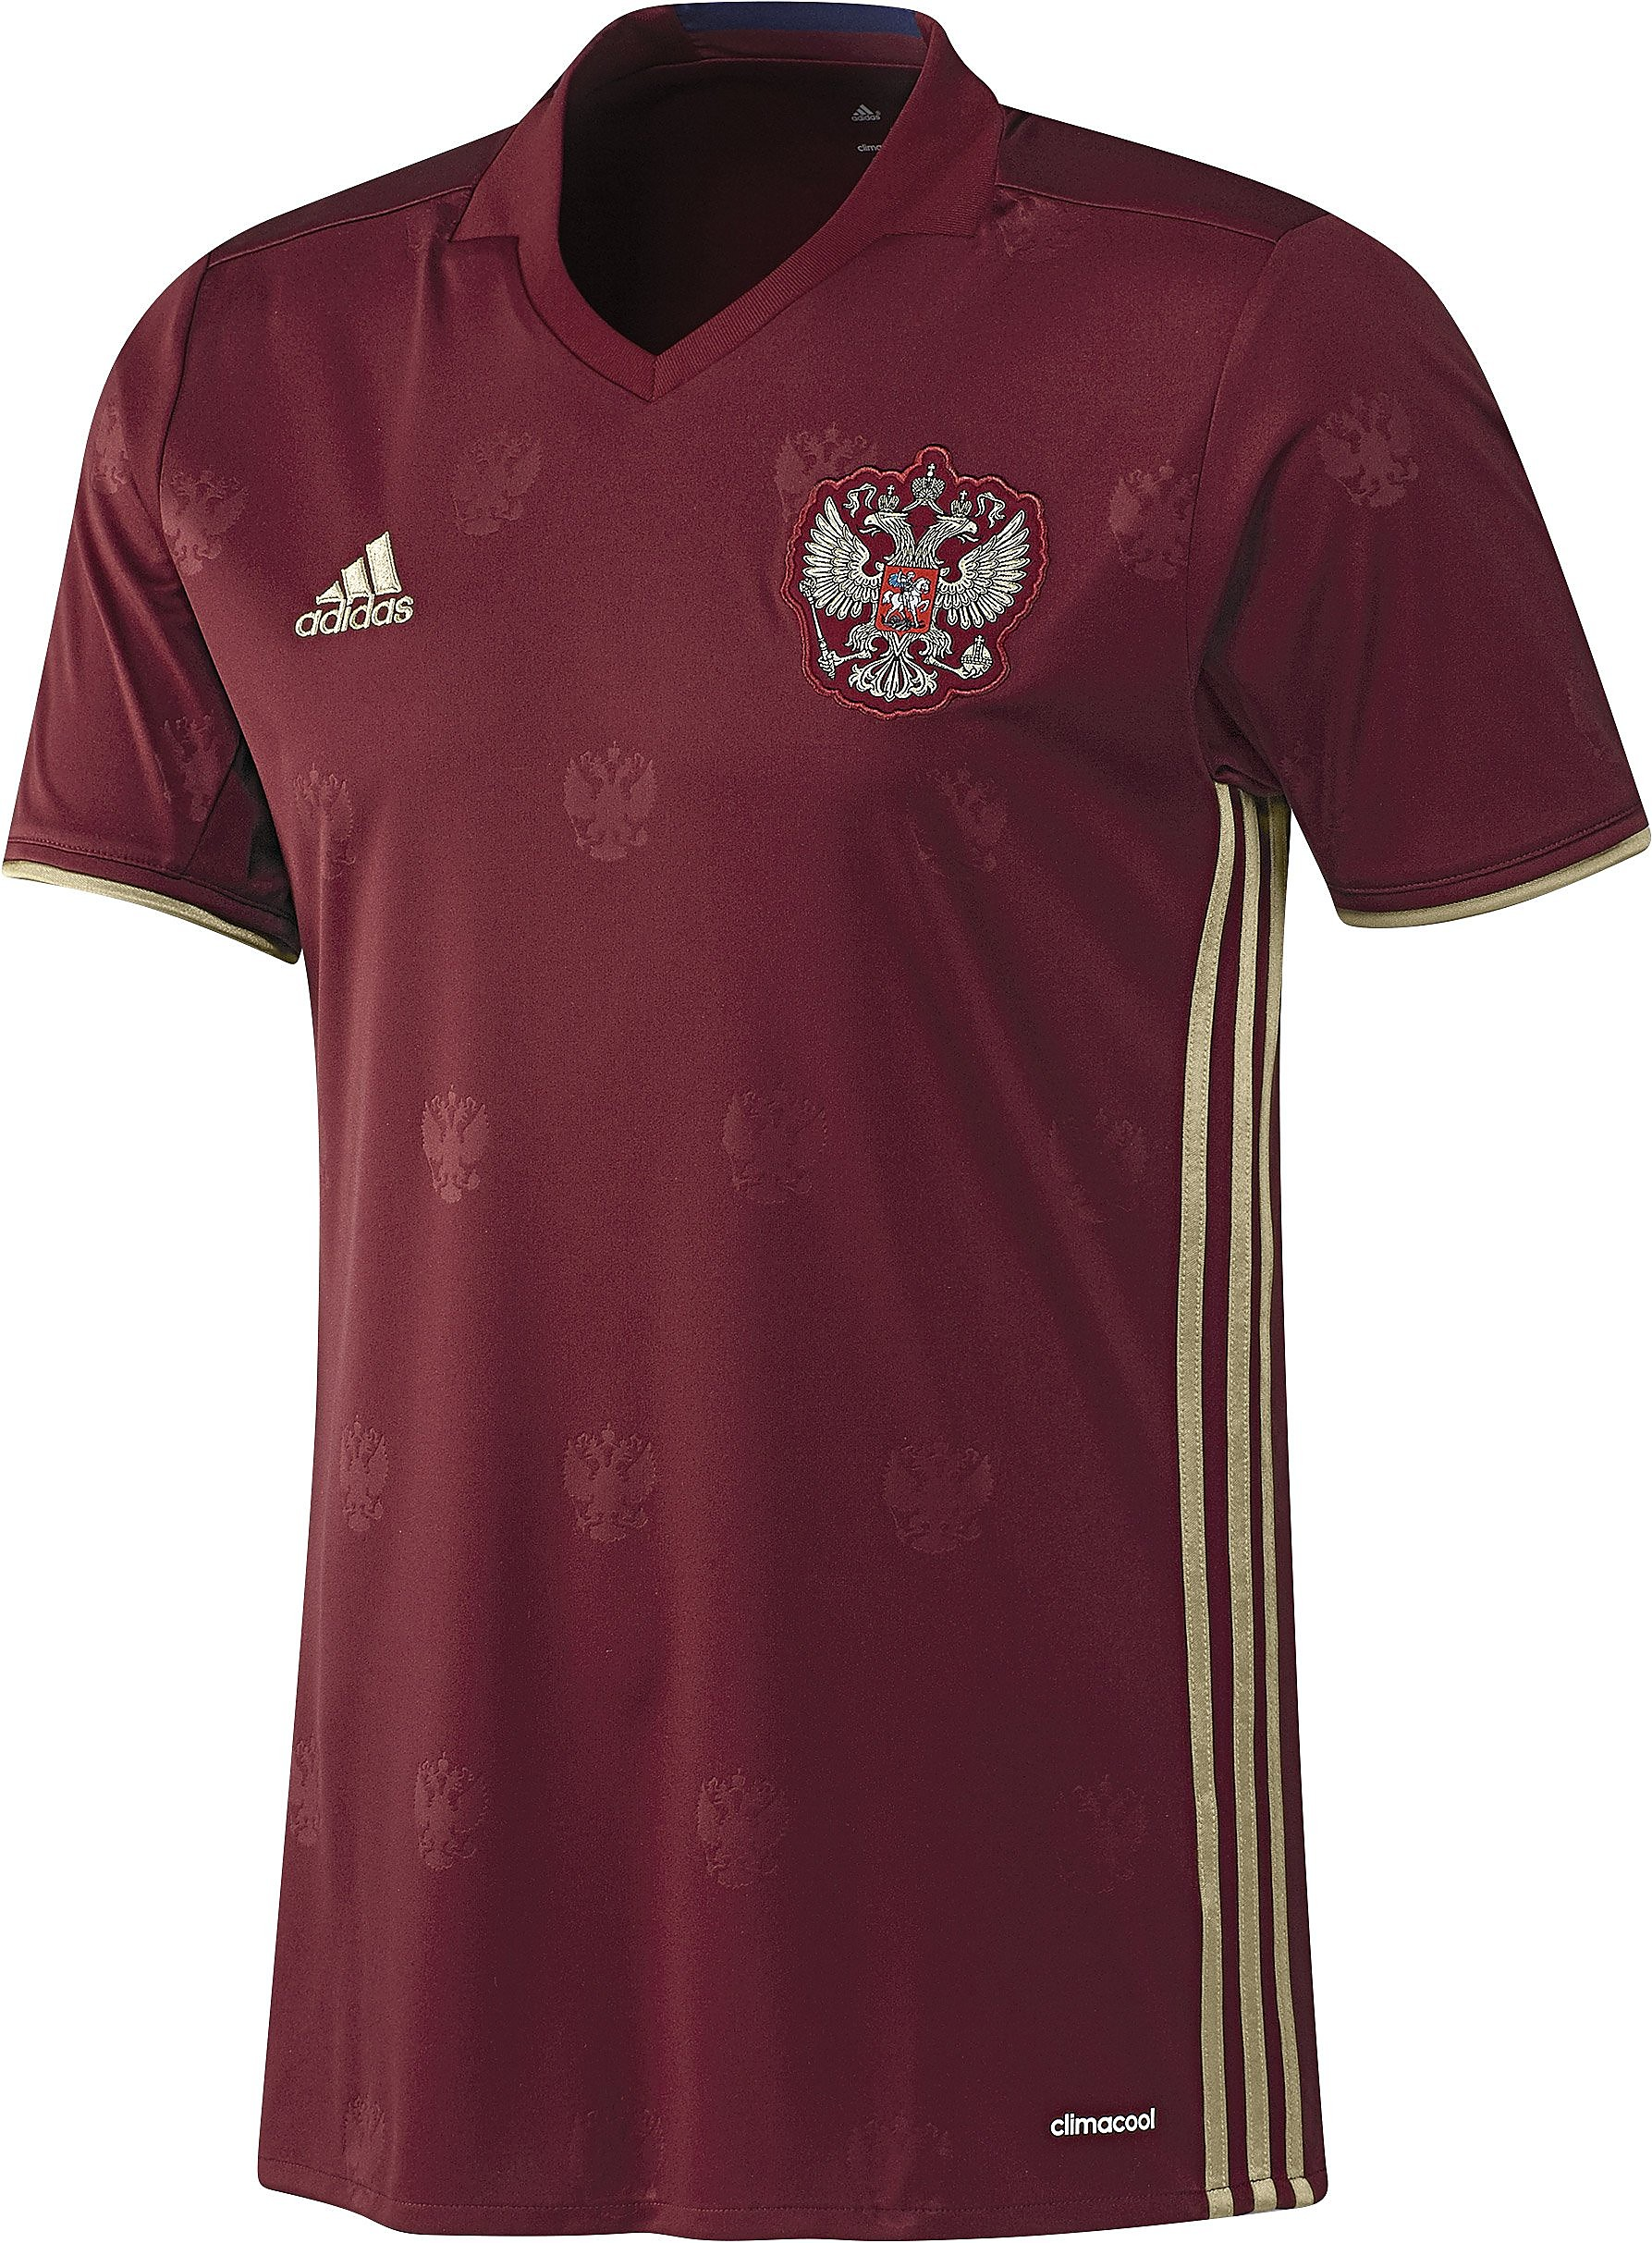 adidas Russia 2015-16 Home Junior Football Short-Sleeve Jersey